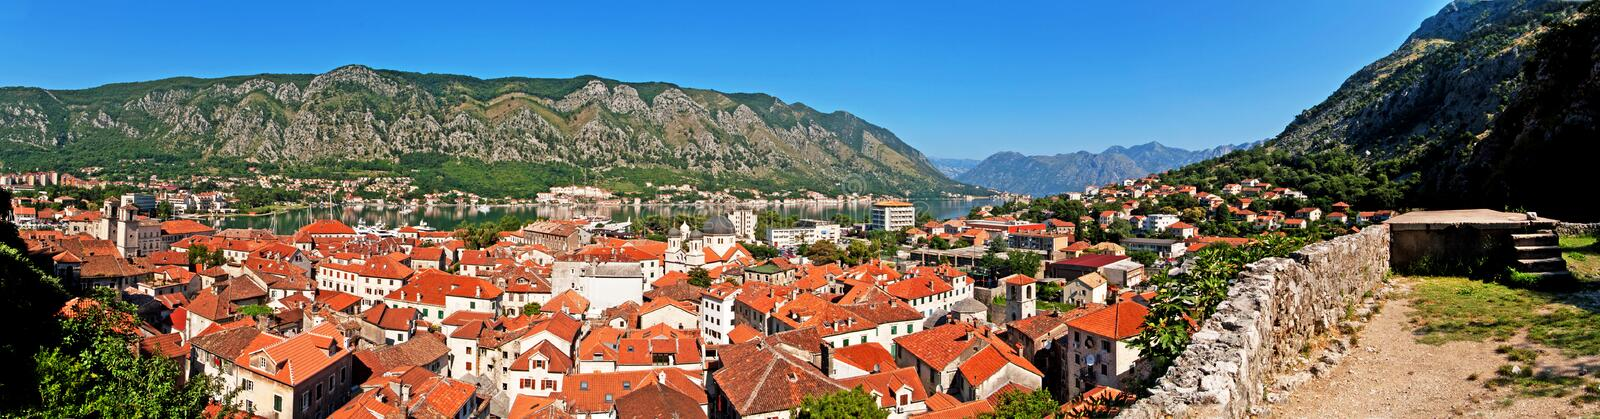 Download Kotor Old Town And Boka Kotorska Bay Stock Image - Image: 24463185